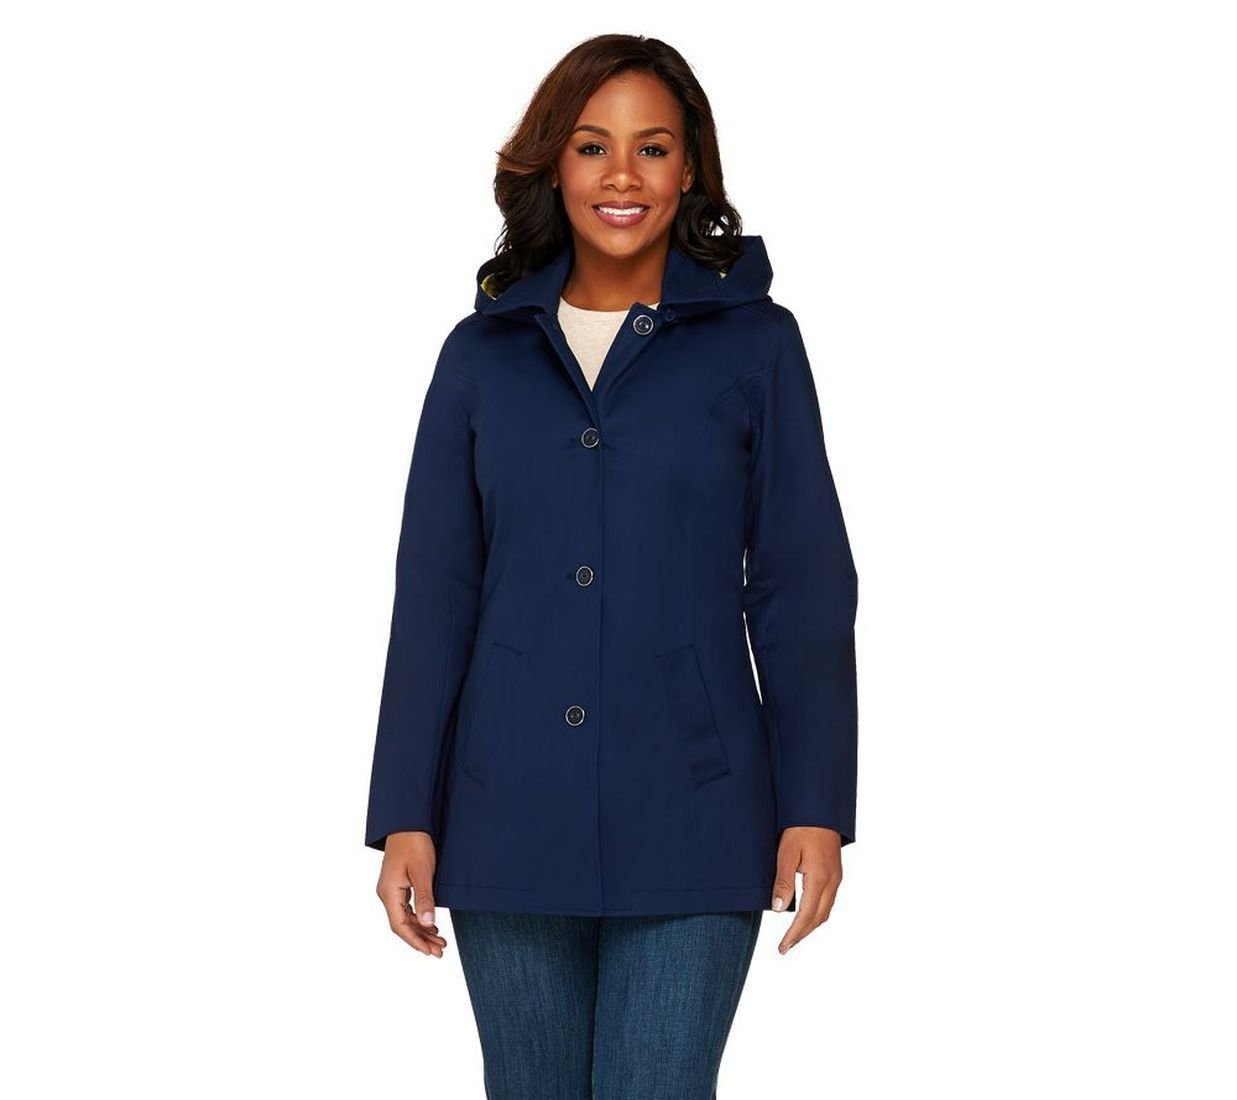 Isaac Mizrahi Woven Semi-Fit Water Repellent Walking Coat Navy 10 New A263841